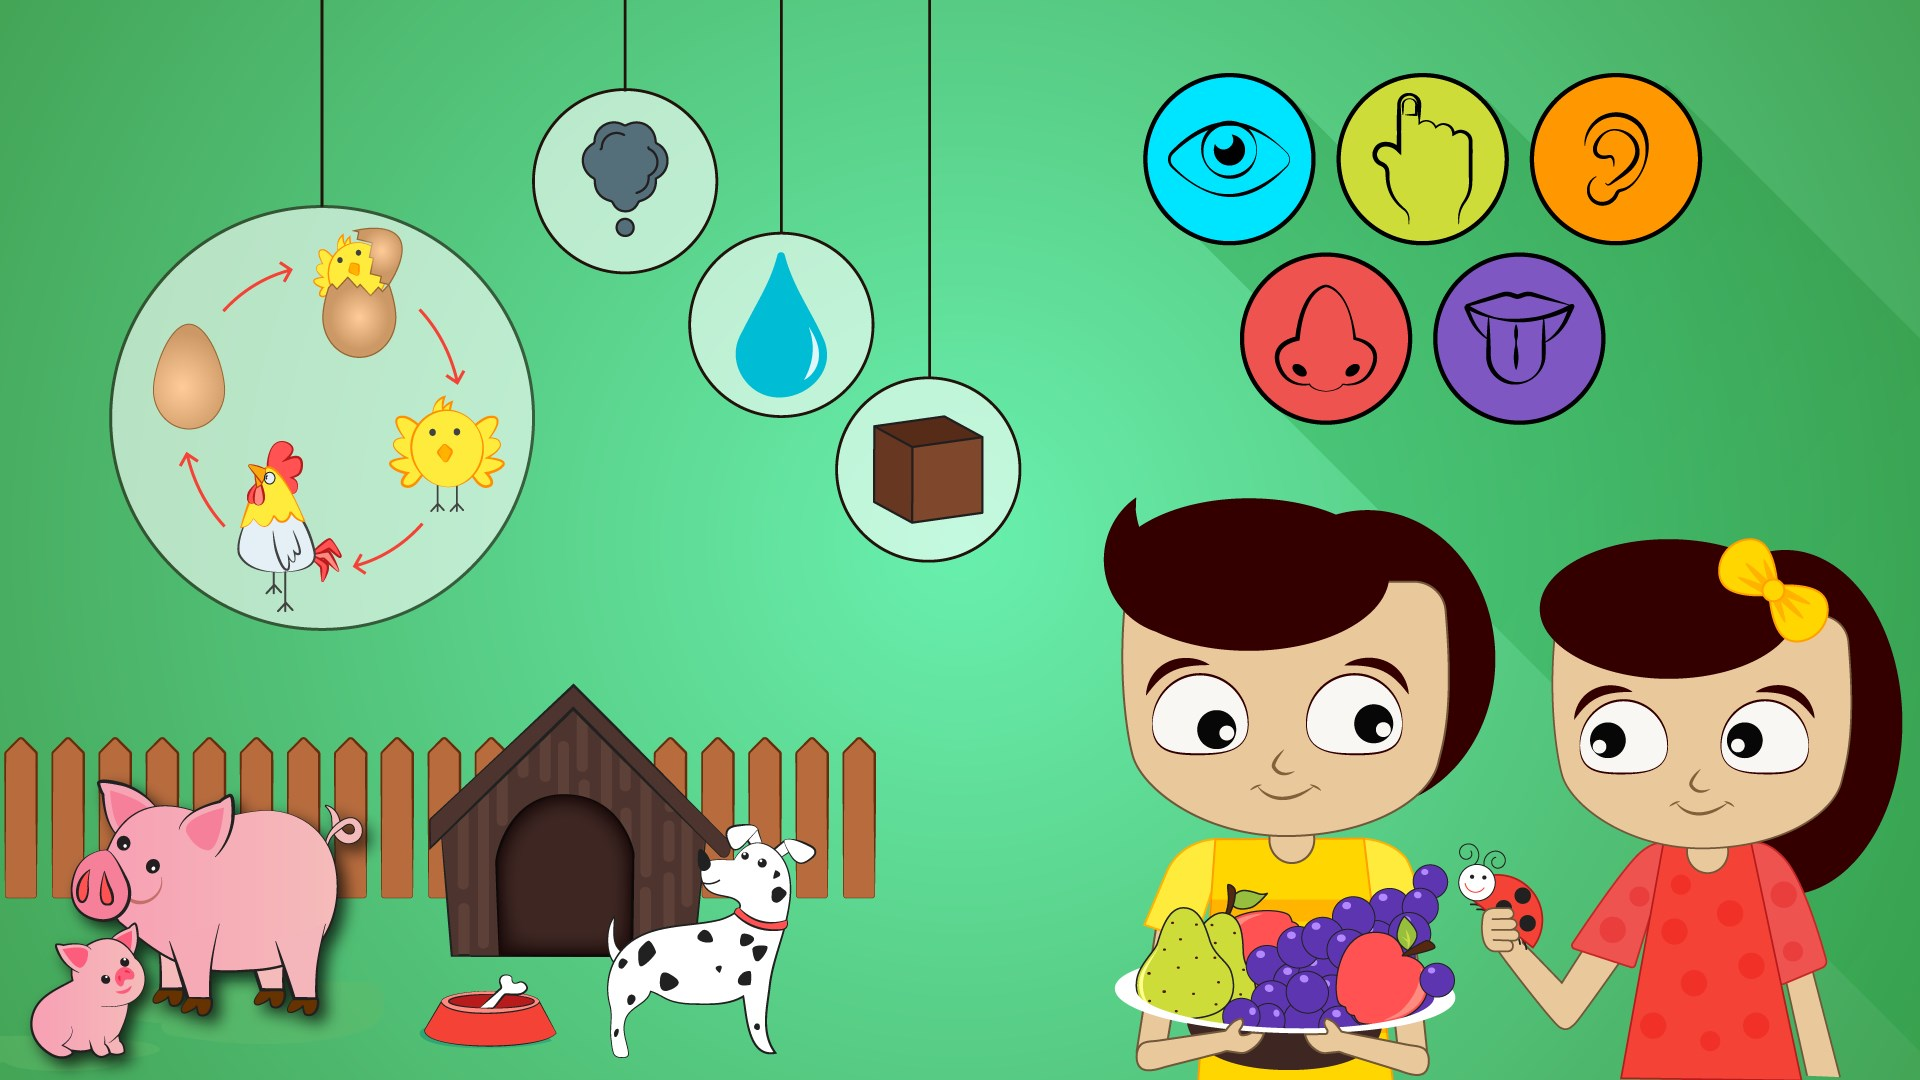 Turkish airlines clipart for kids to paint royalty free Get Kids Games Learning Science - Microsoft Store royalty free